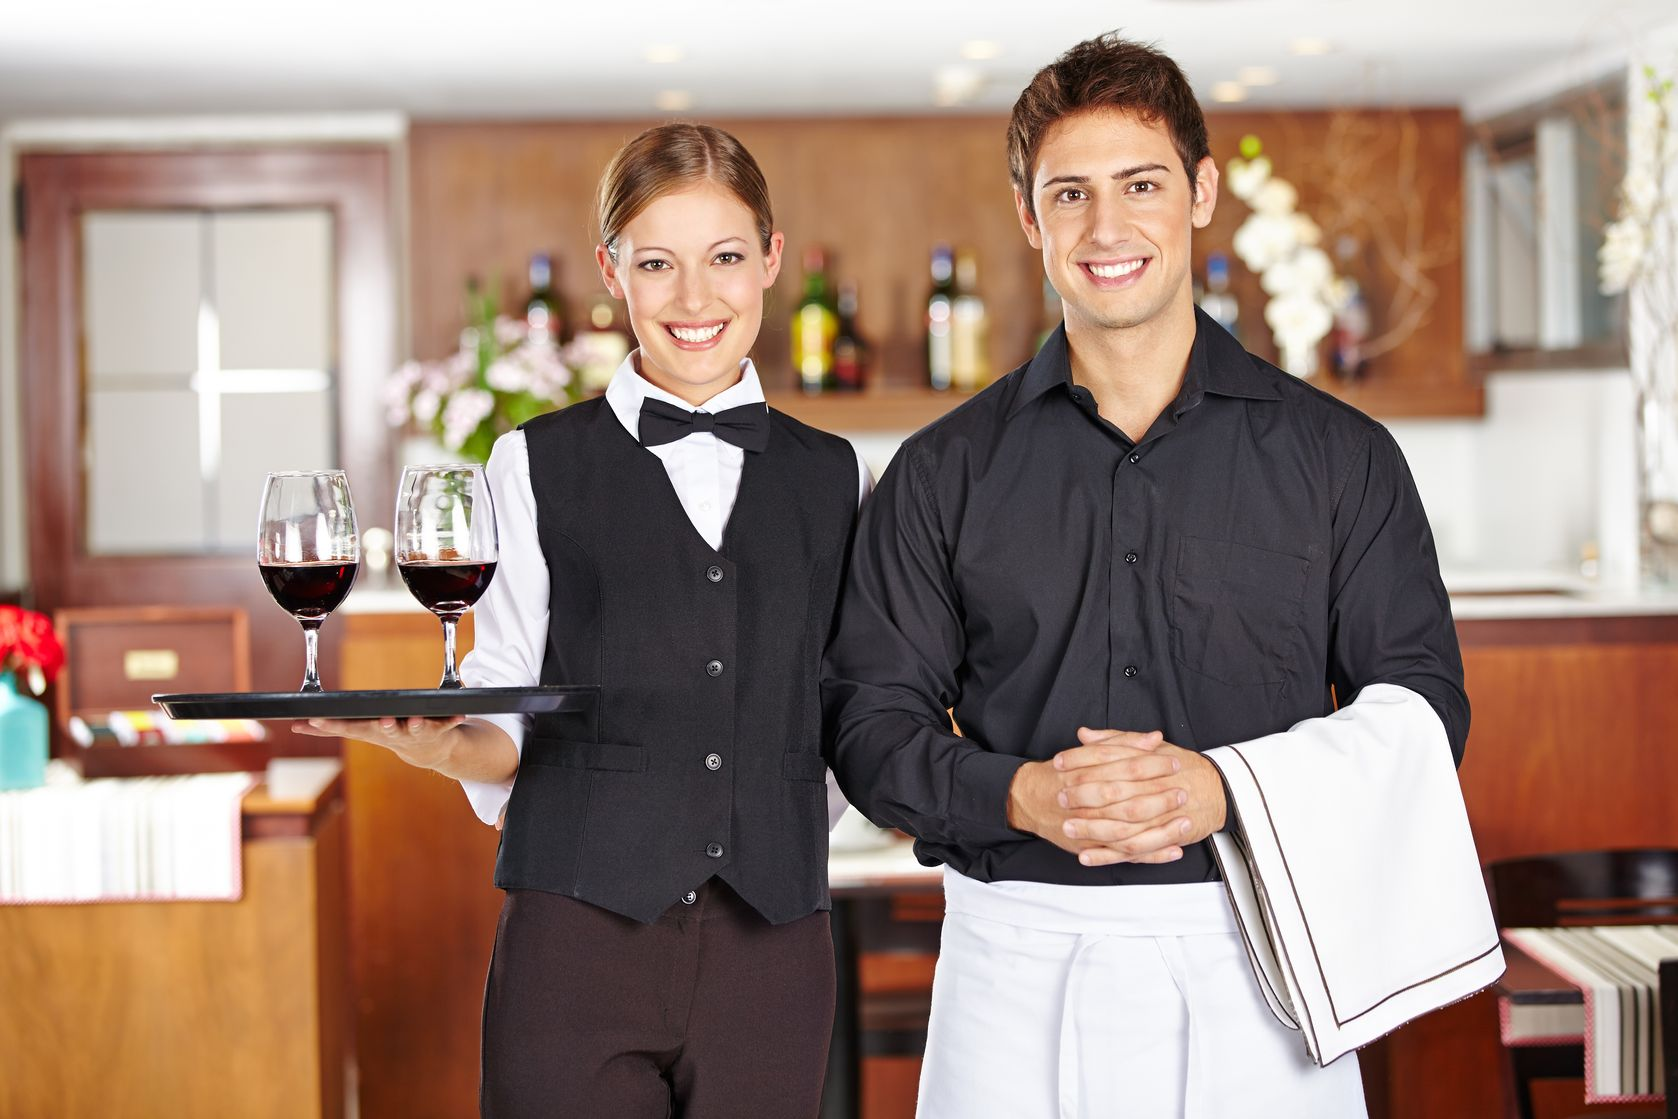 Hospitality and Catering Business for sale in Albury - Wodonga